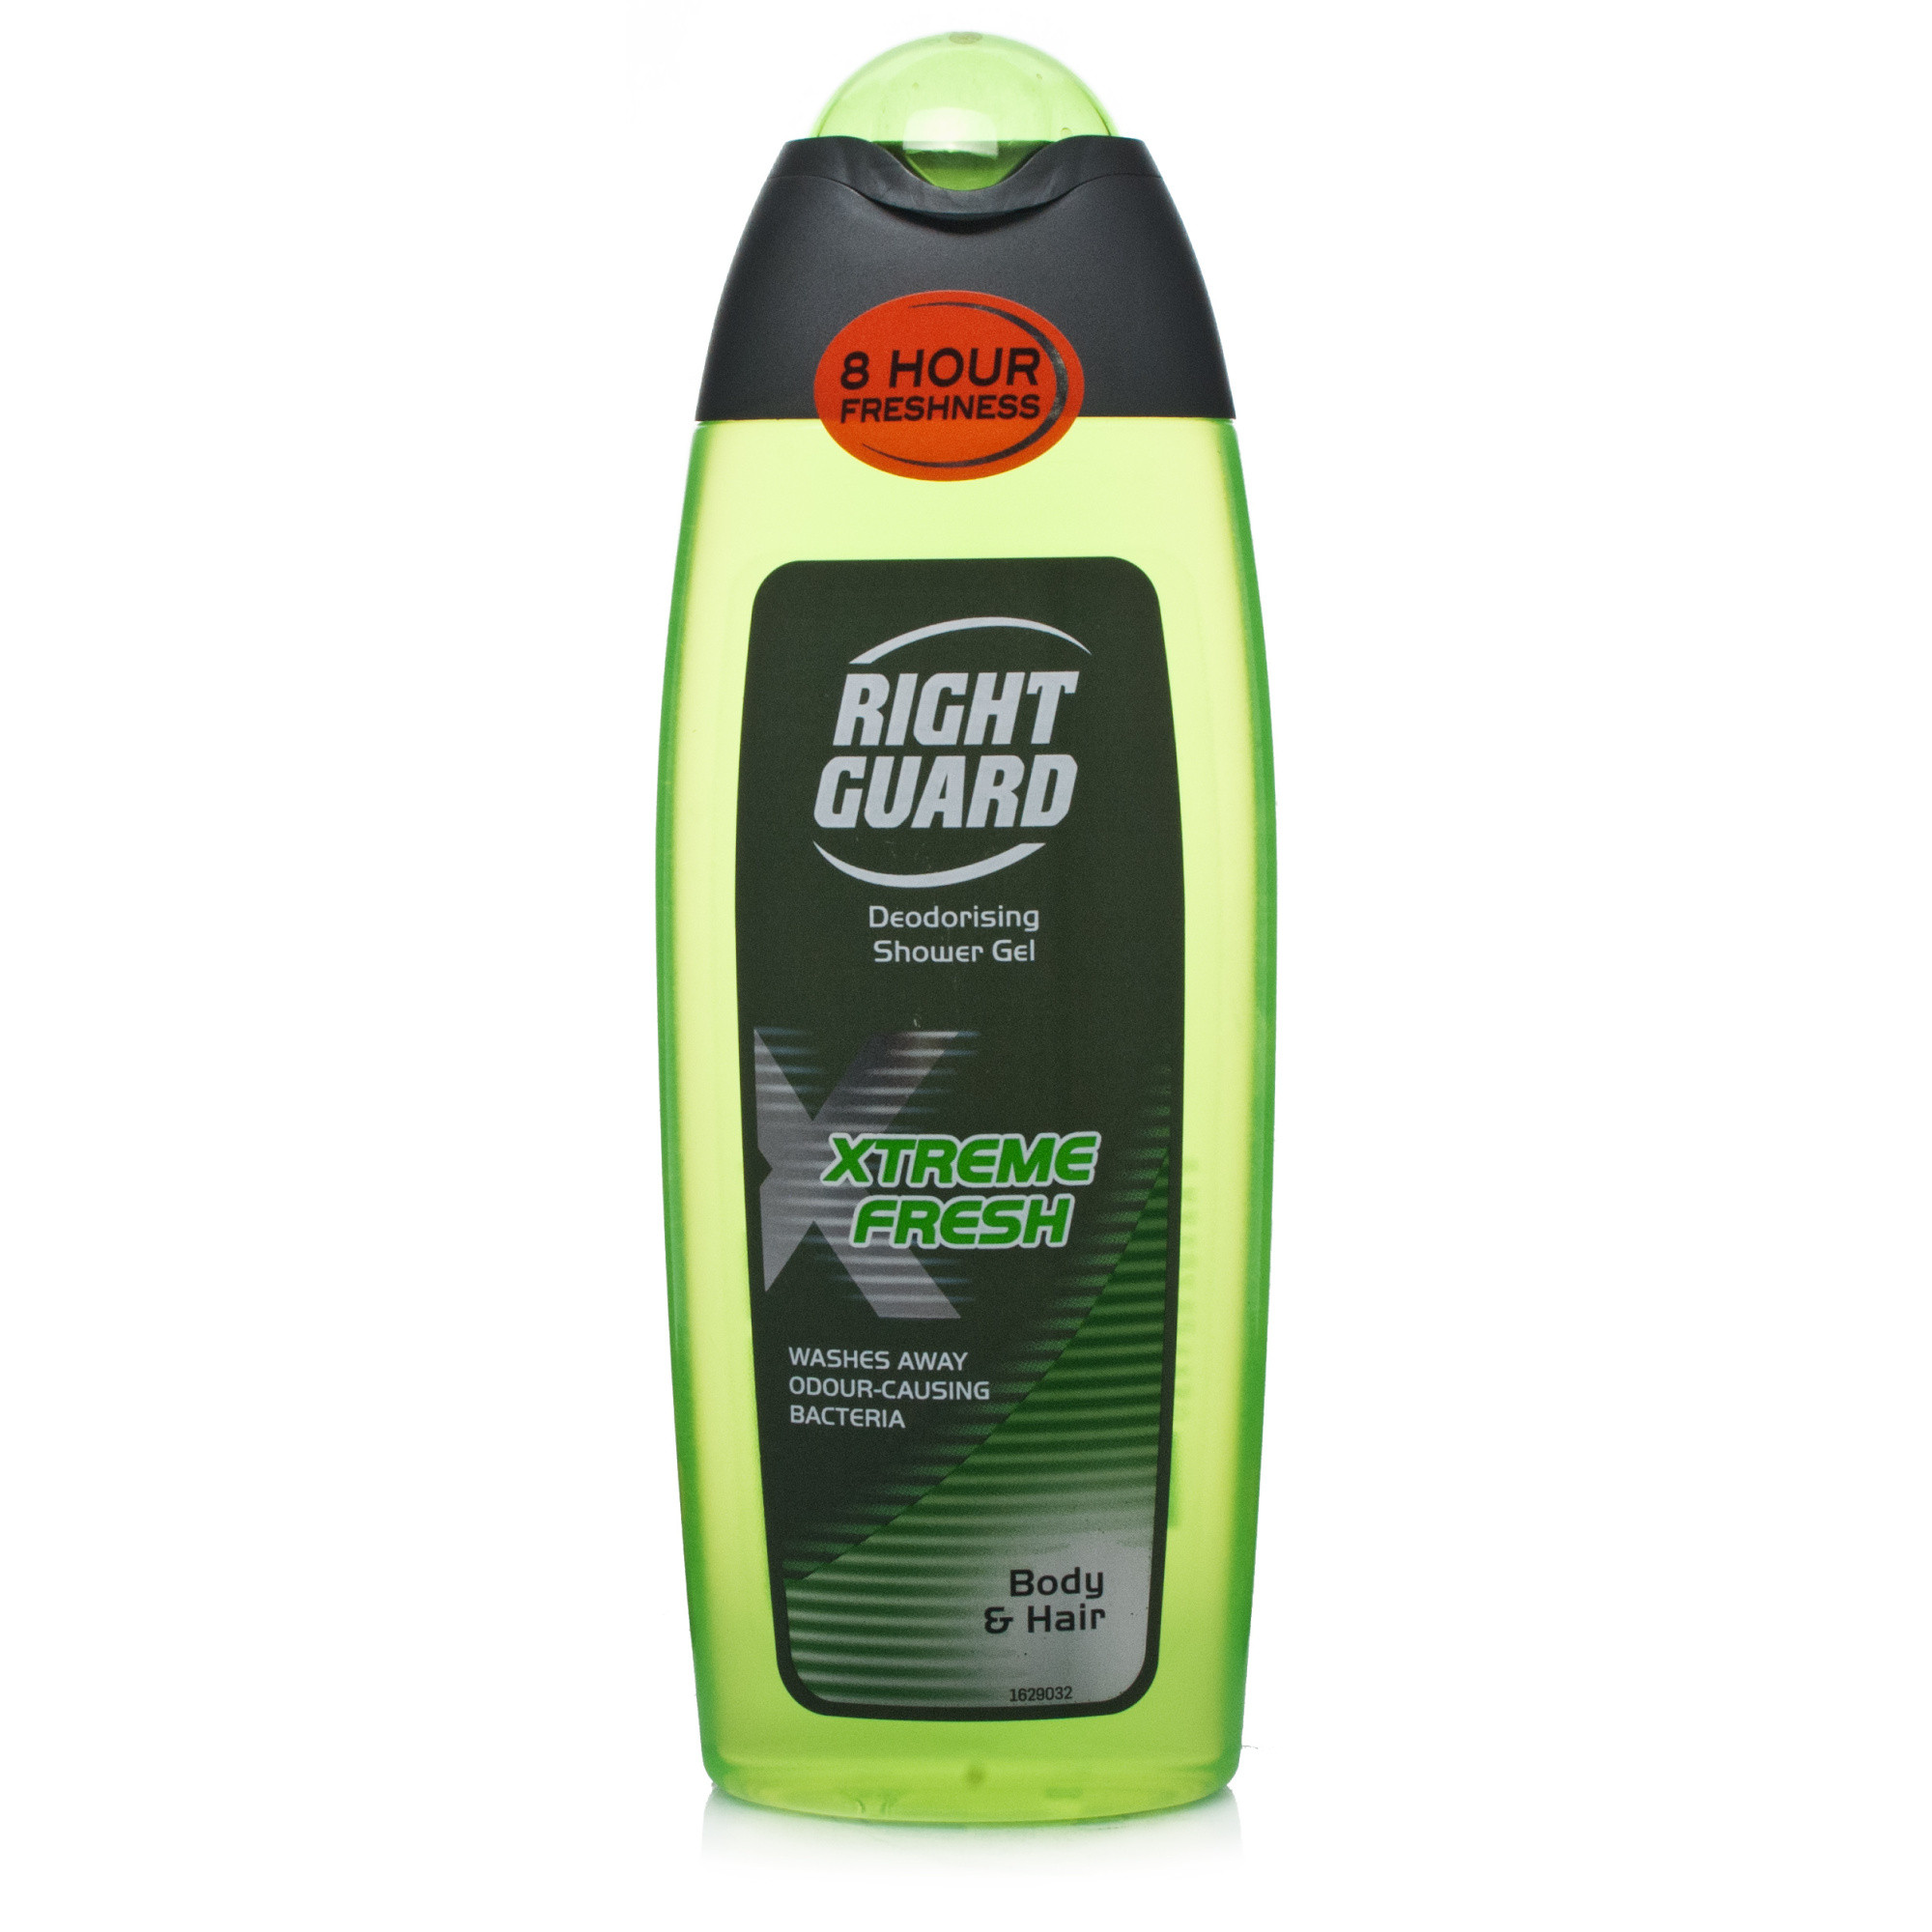 Right Guard Xtreme Fresh Shower Gel